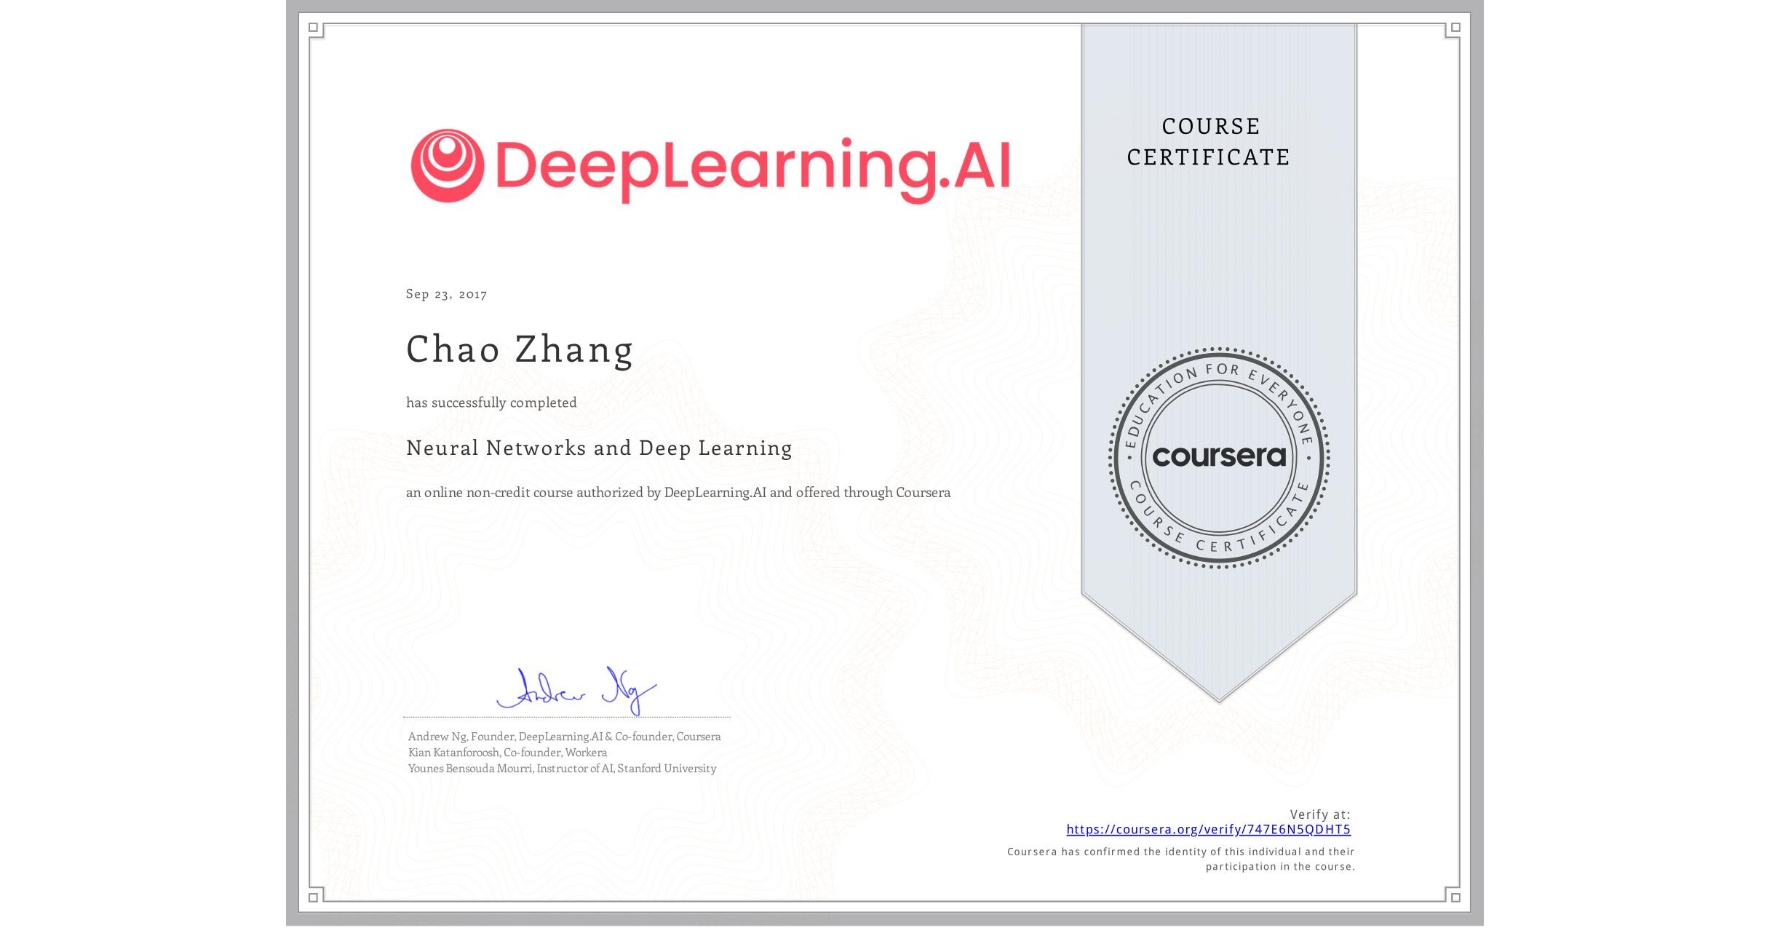 View certificate for Chao Zhang, Neural Networks and Deep Learning, an online non-credit course authorized by DeepLearning.AI and offered through Coursera